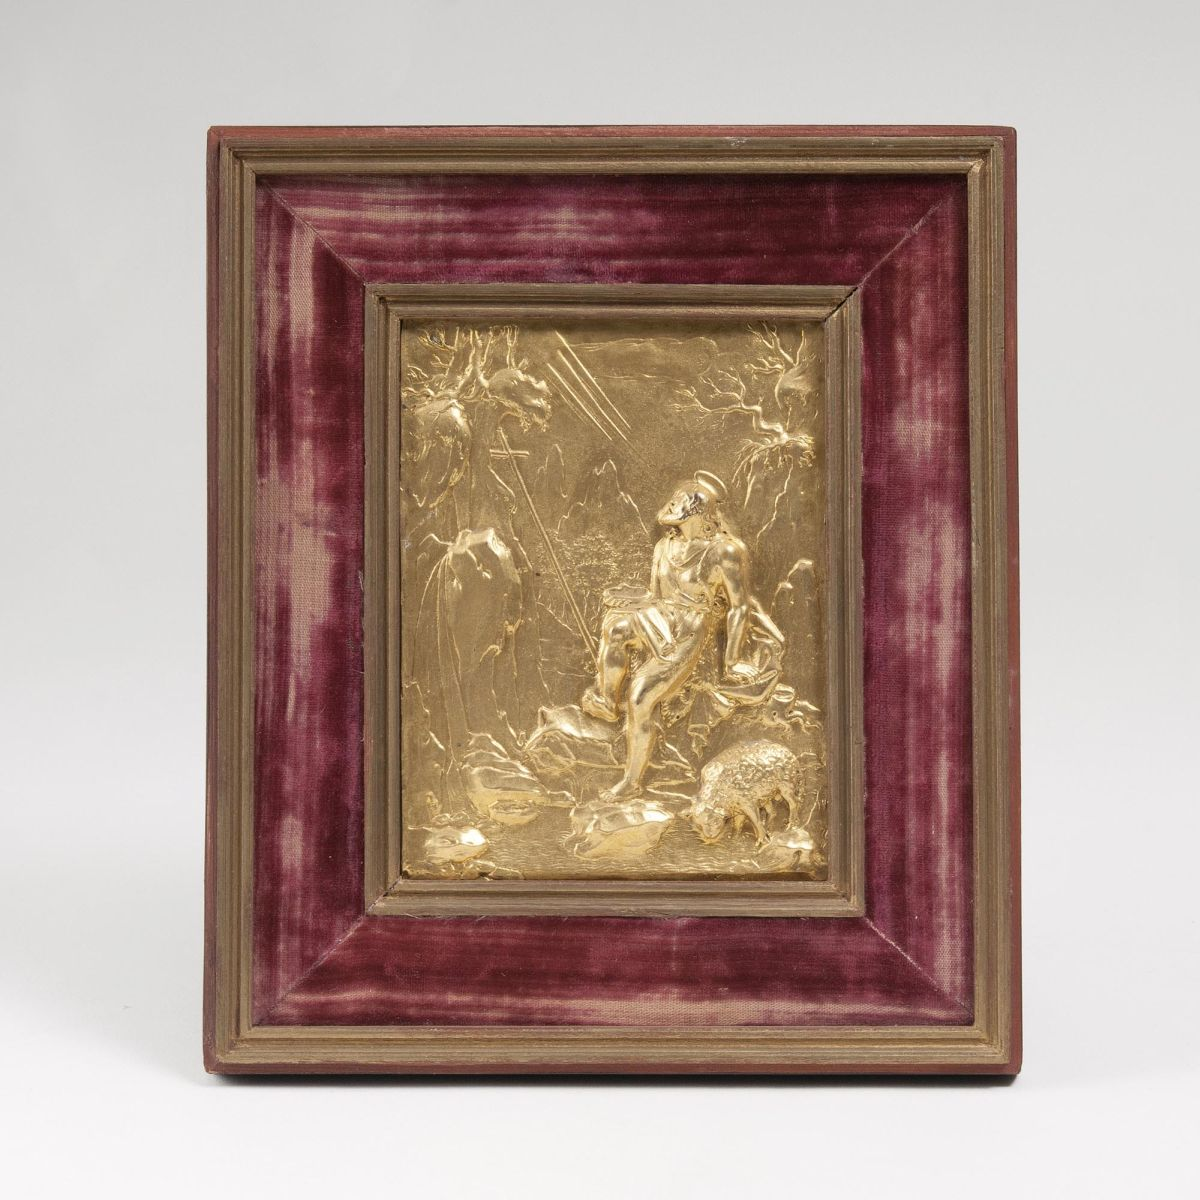 A fine Reliefed Plaque 'John the Baptist in the Desert'